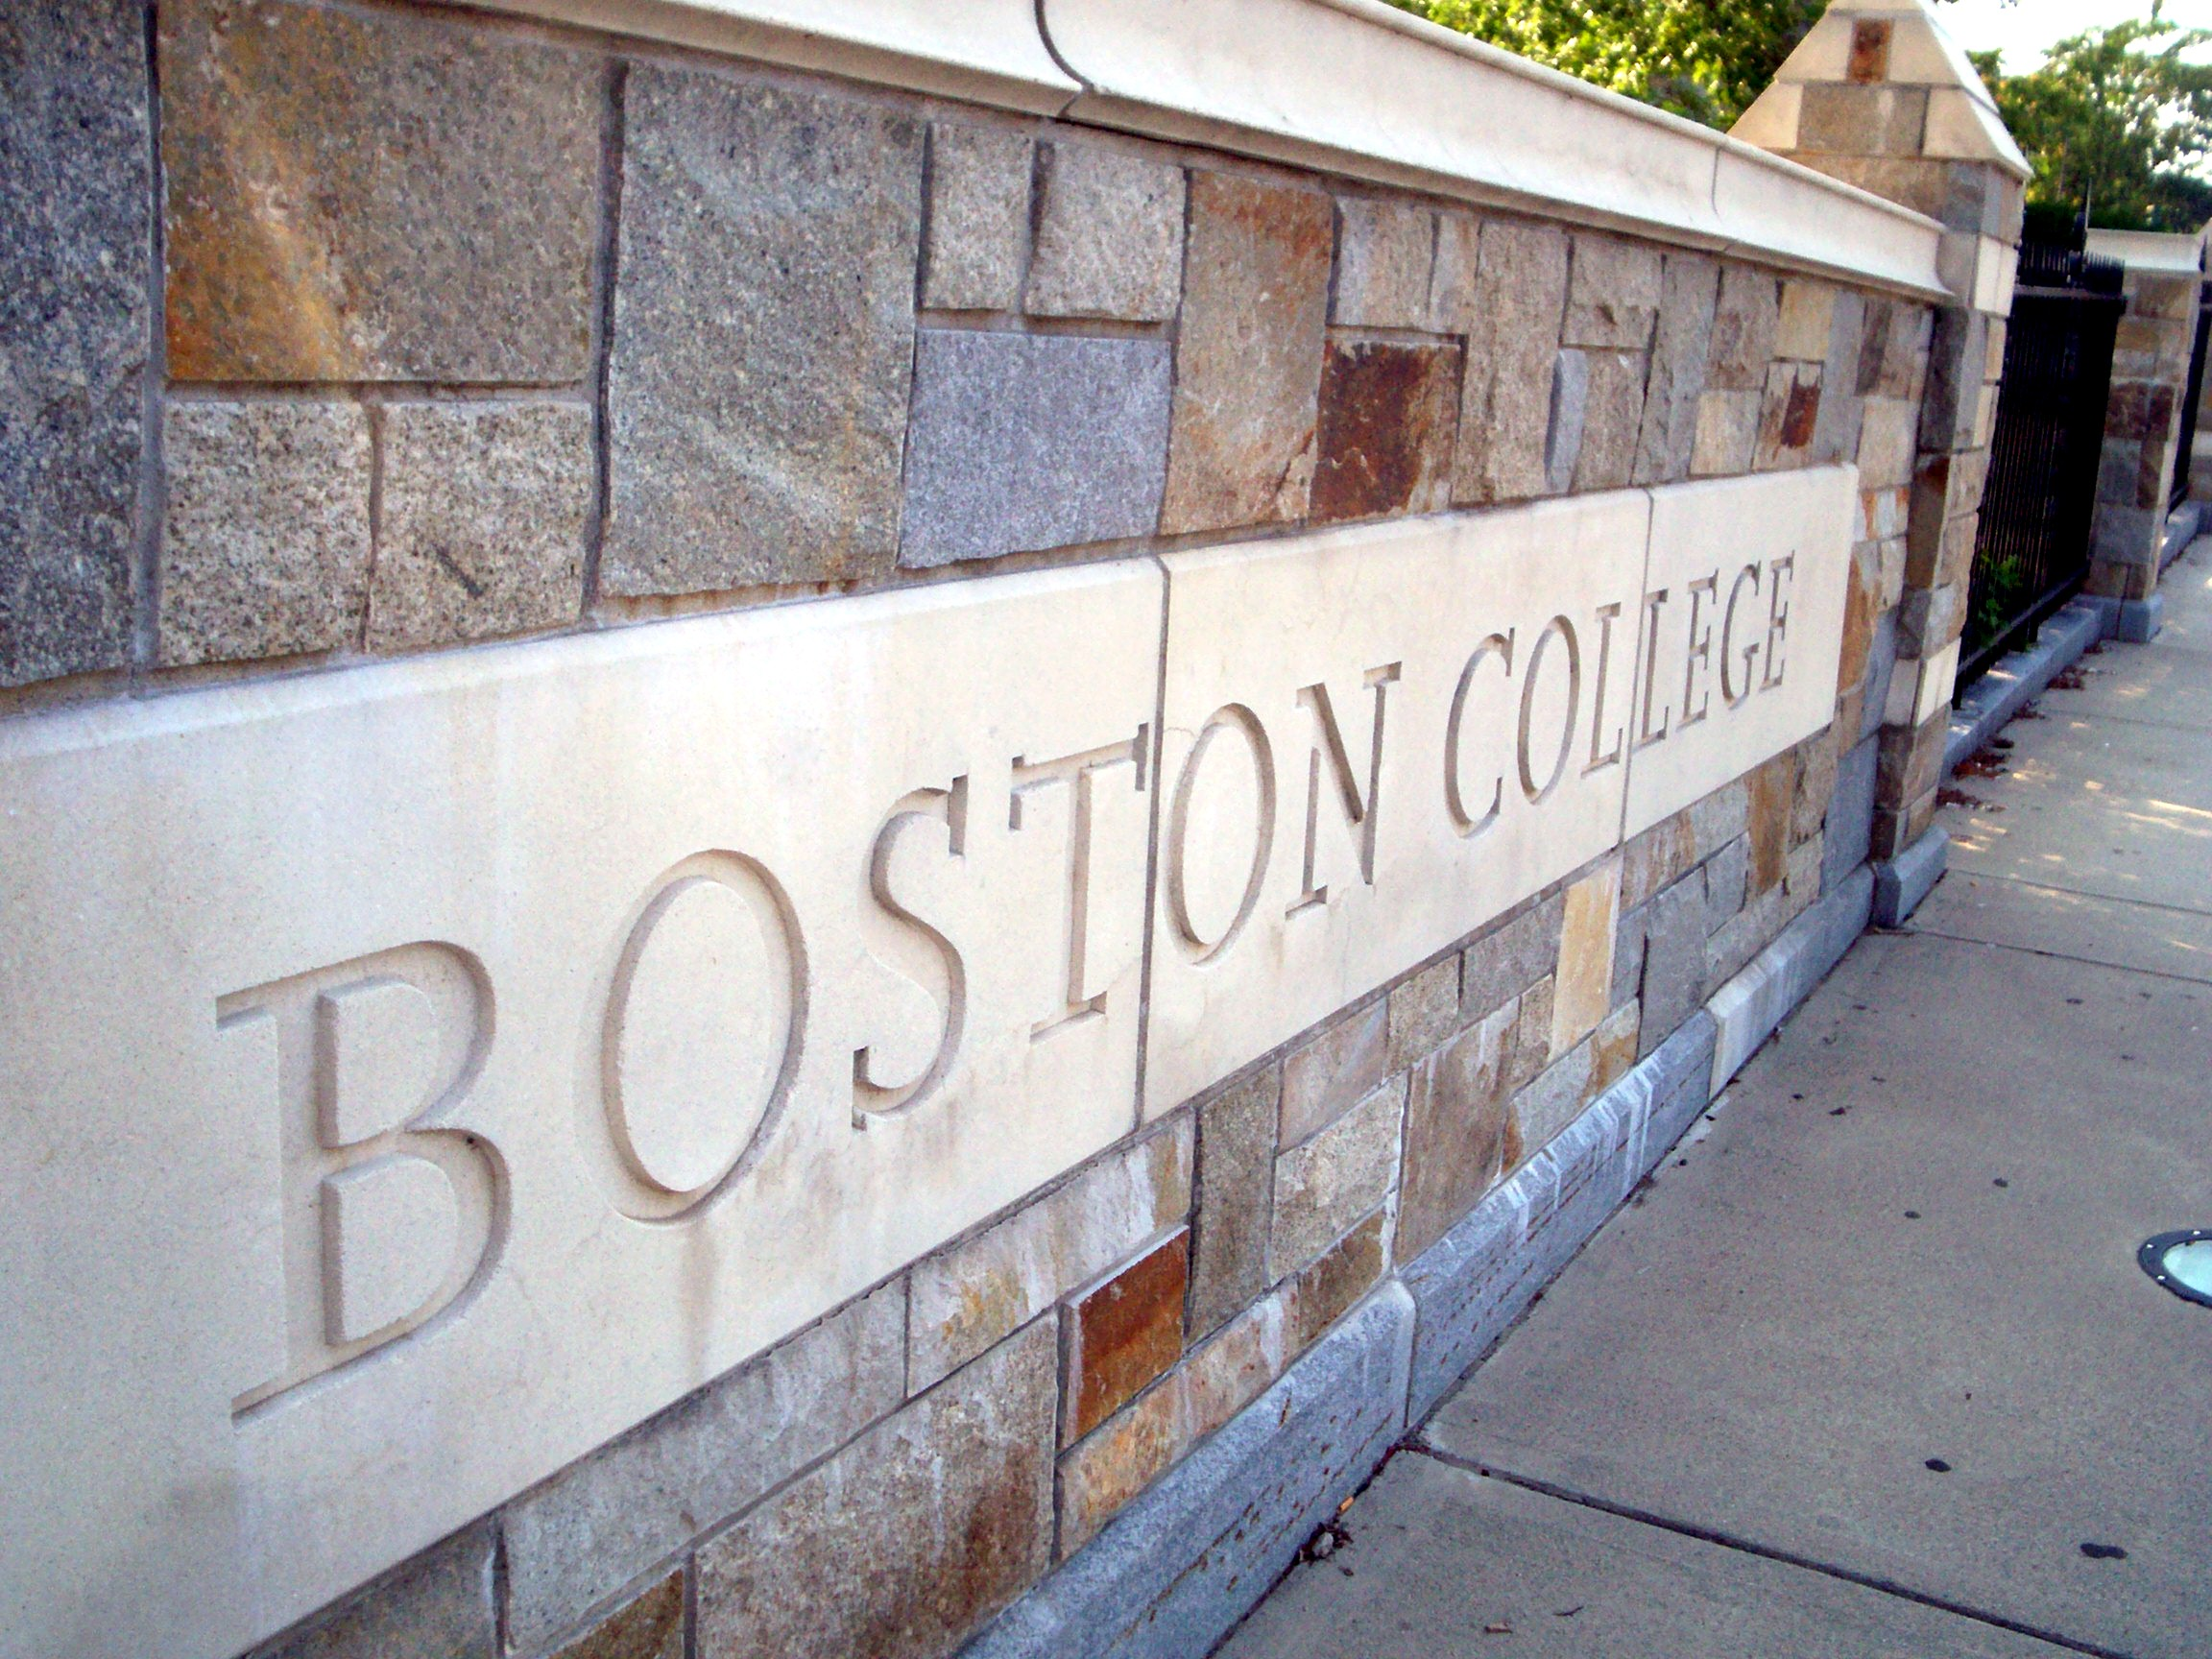 file boson college sign jpg file boson college sign jpg